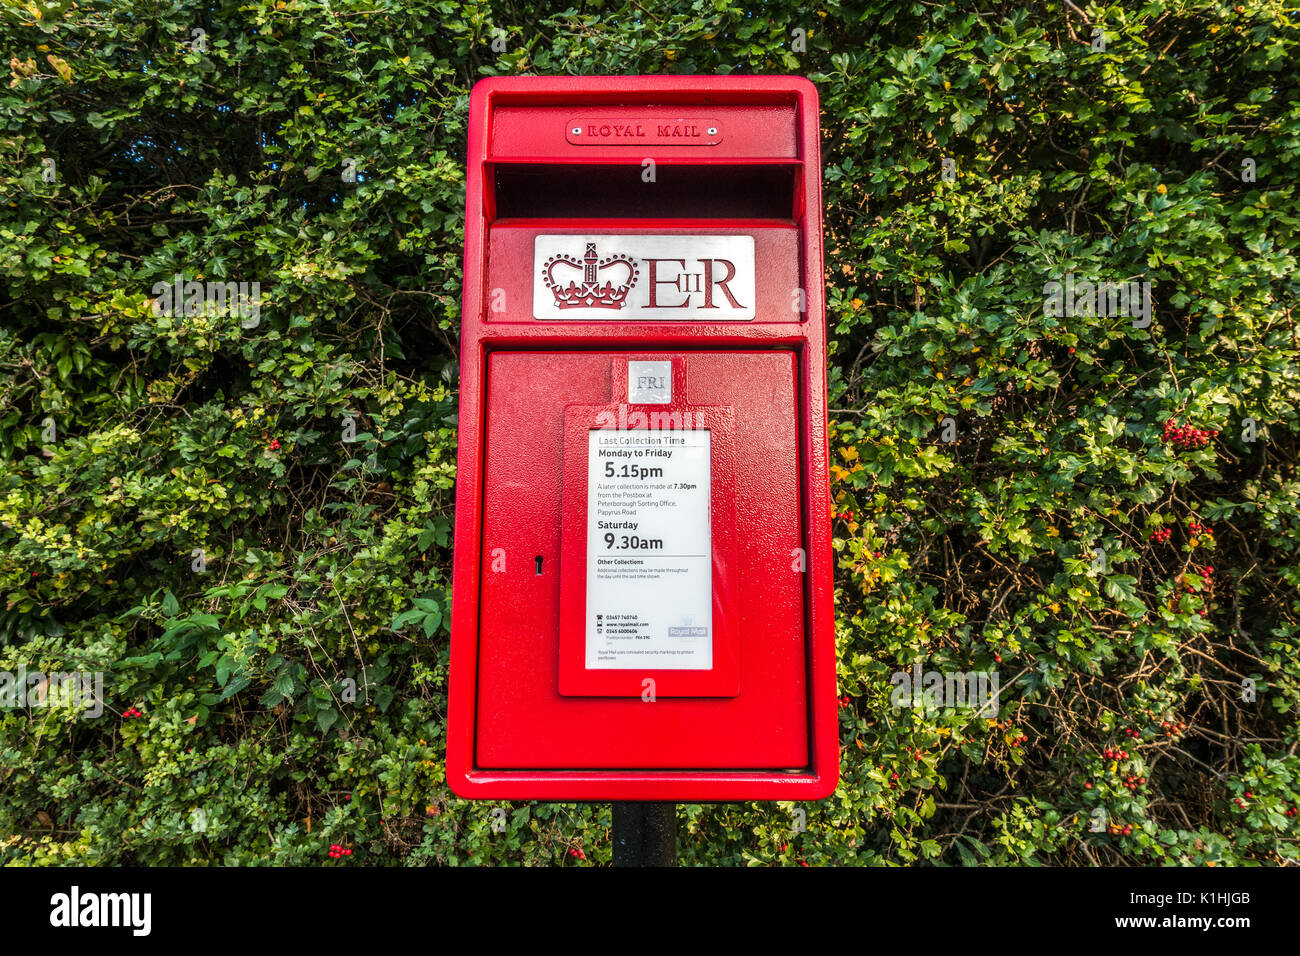 Royal Mail post box, painted bright red and displaying the pickup schedule for this local collection point within the national network. England, UK. - Stock Image